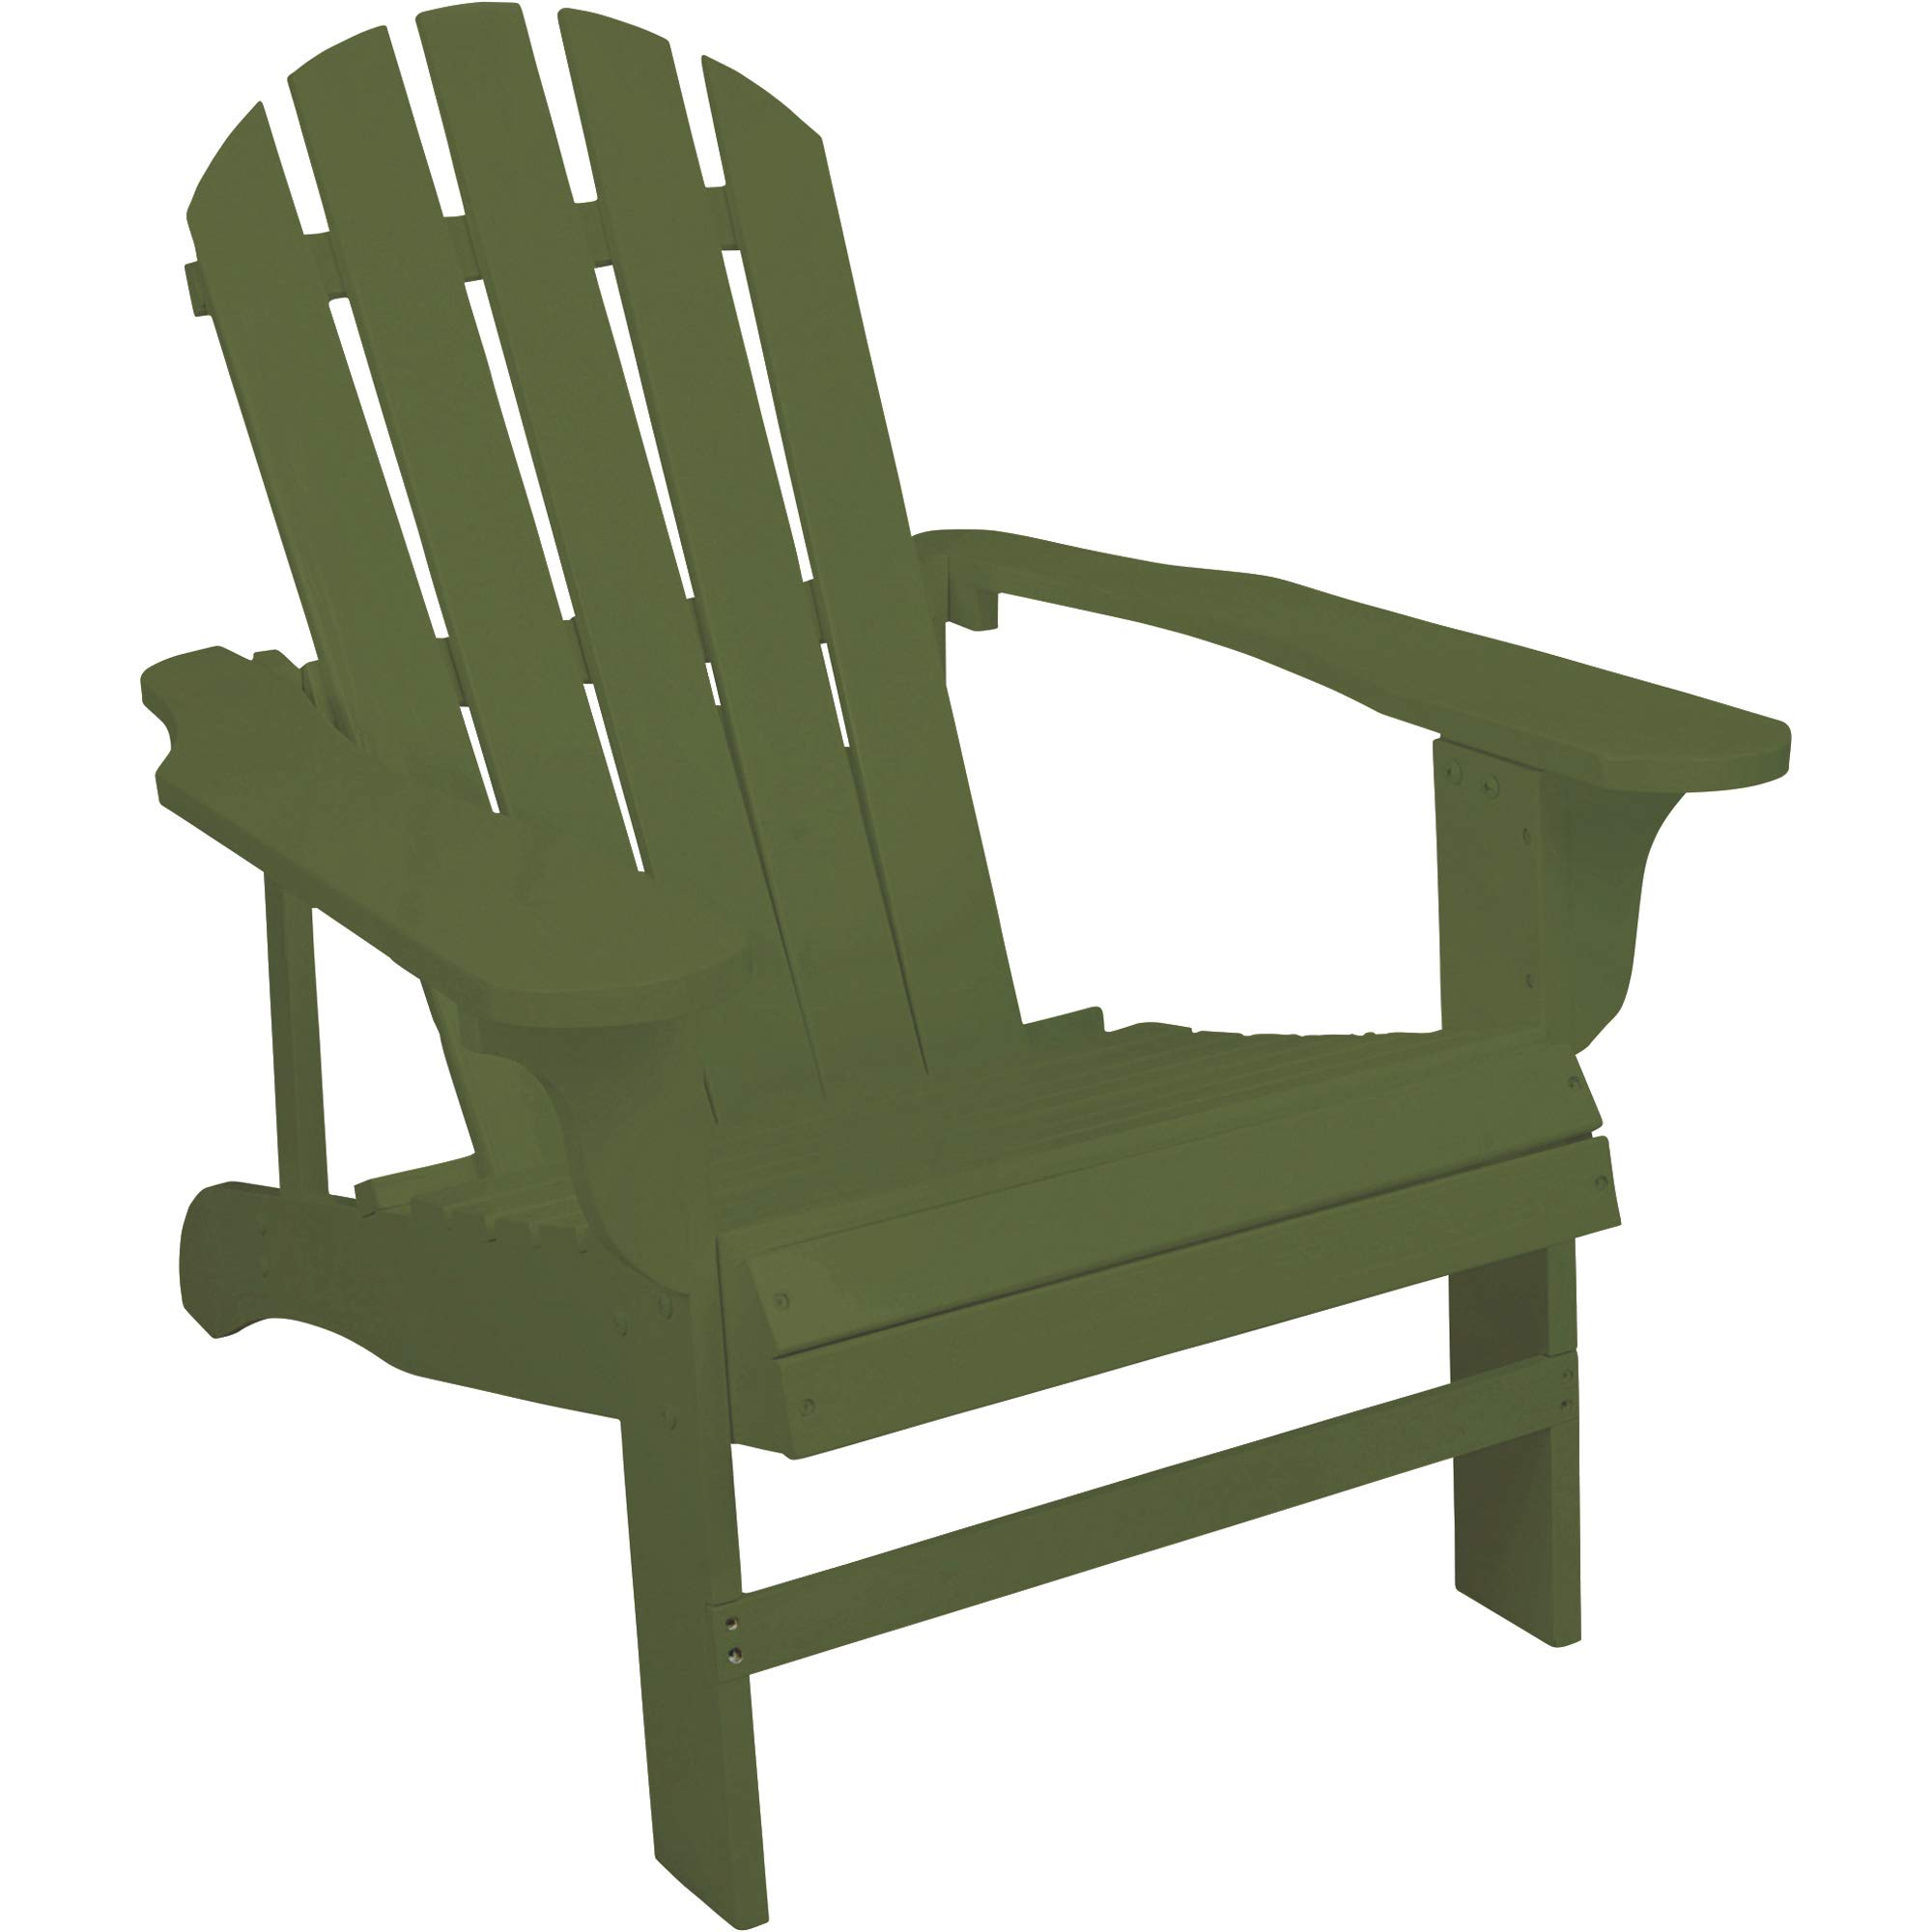 Leigh Country Classic Sage Painted Wood Adirondack Chair by Leigh Country